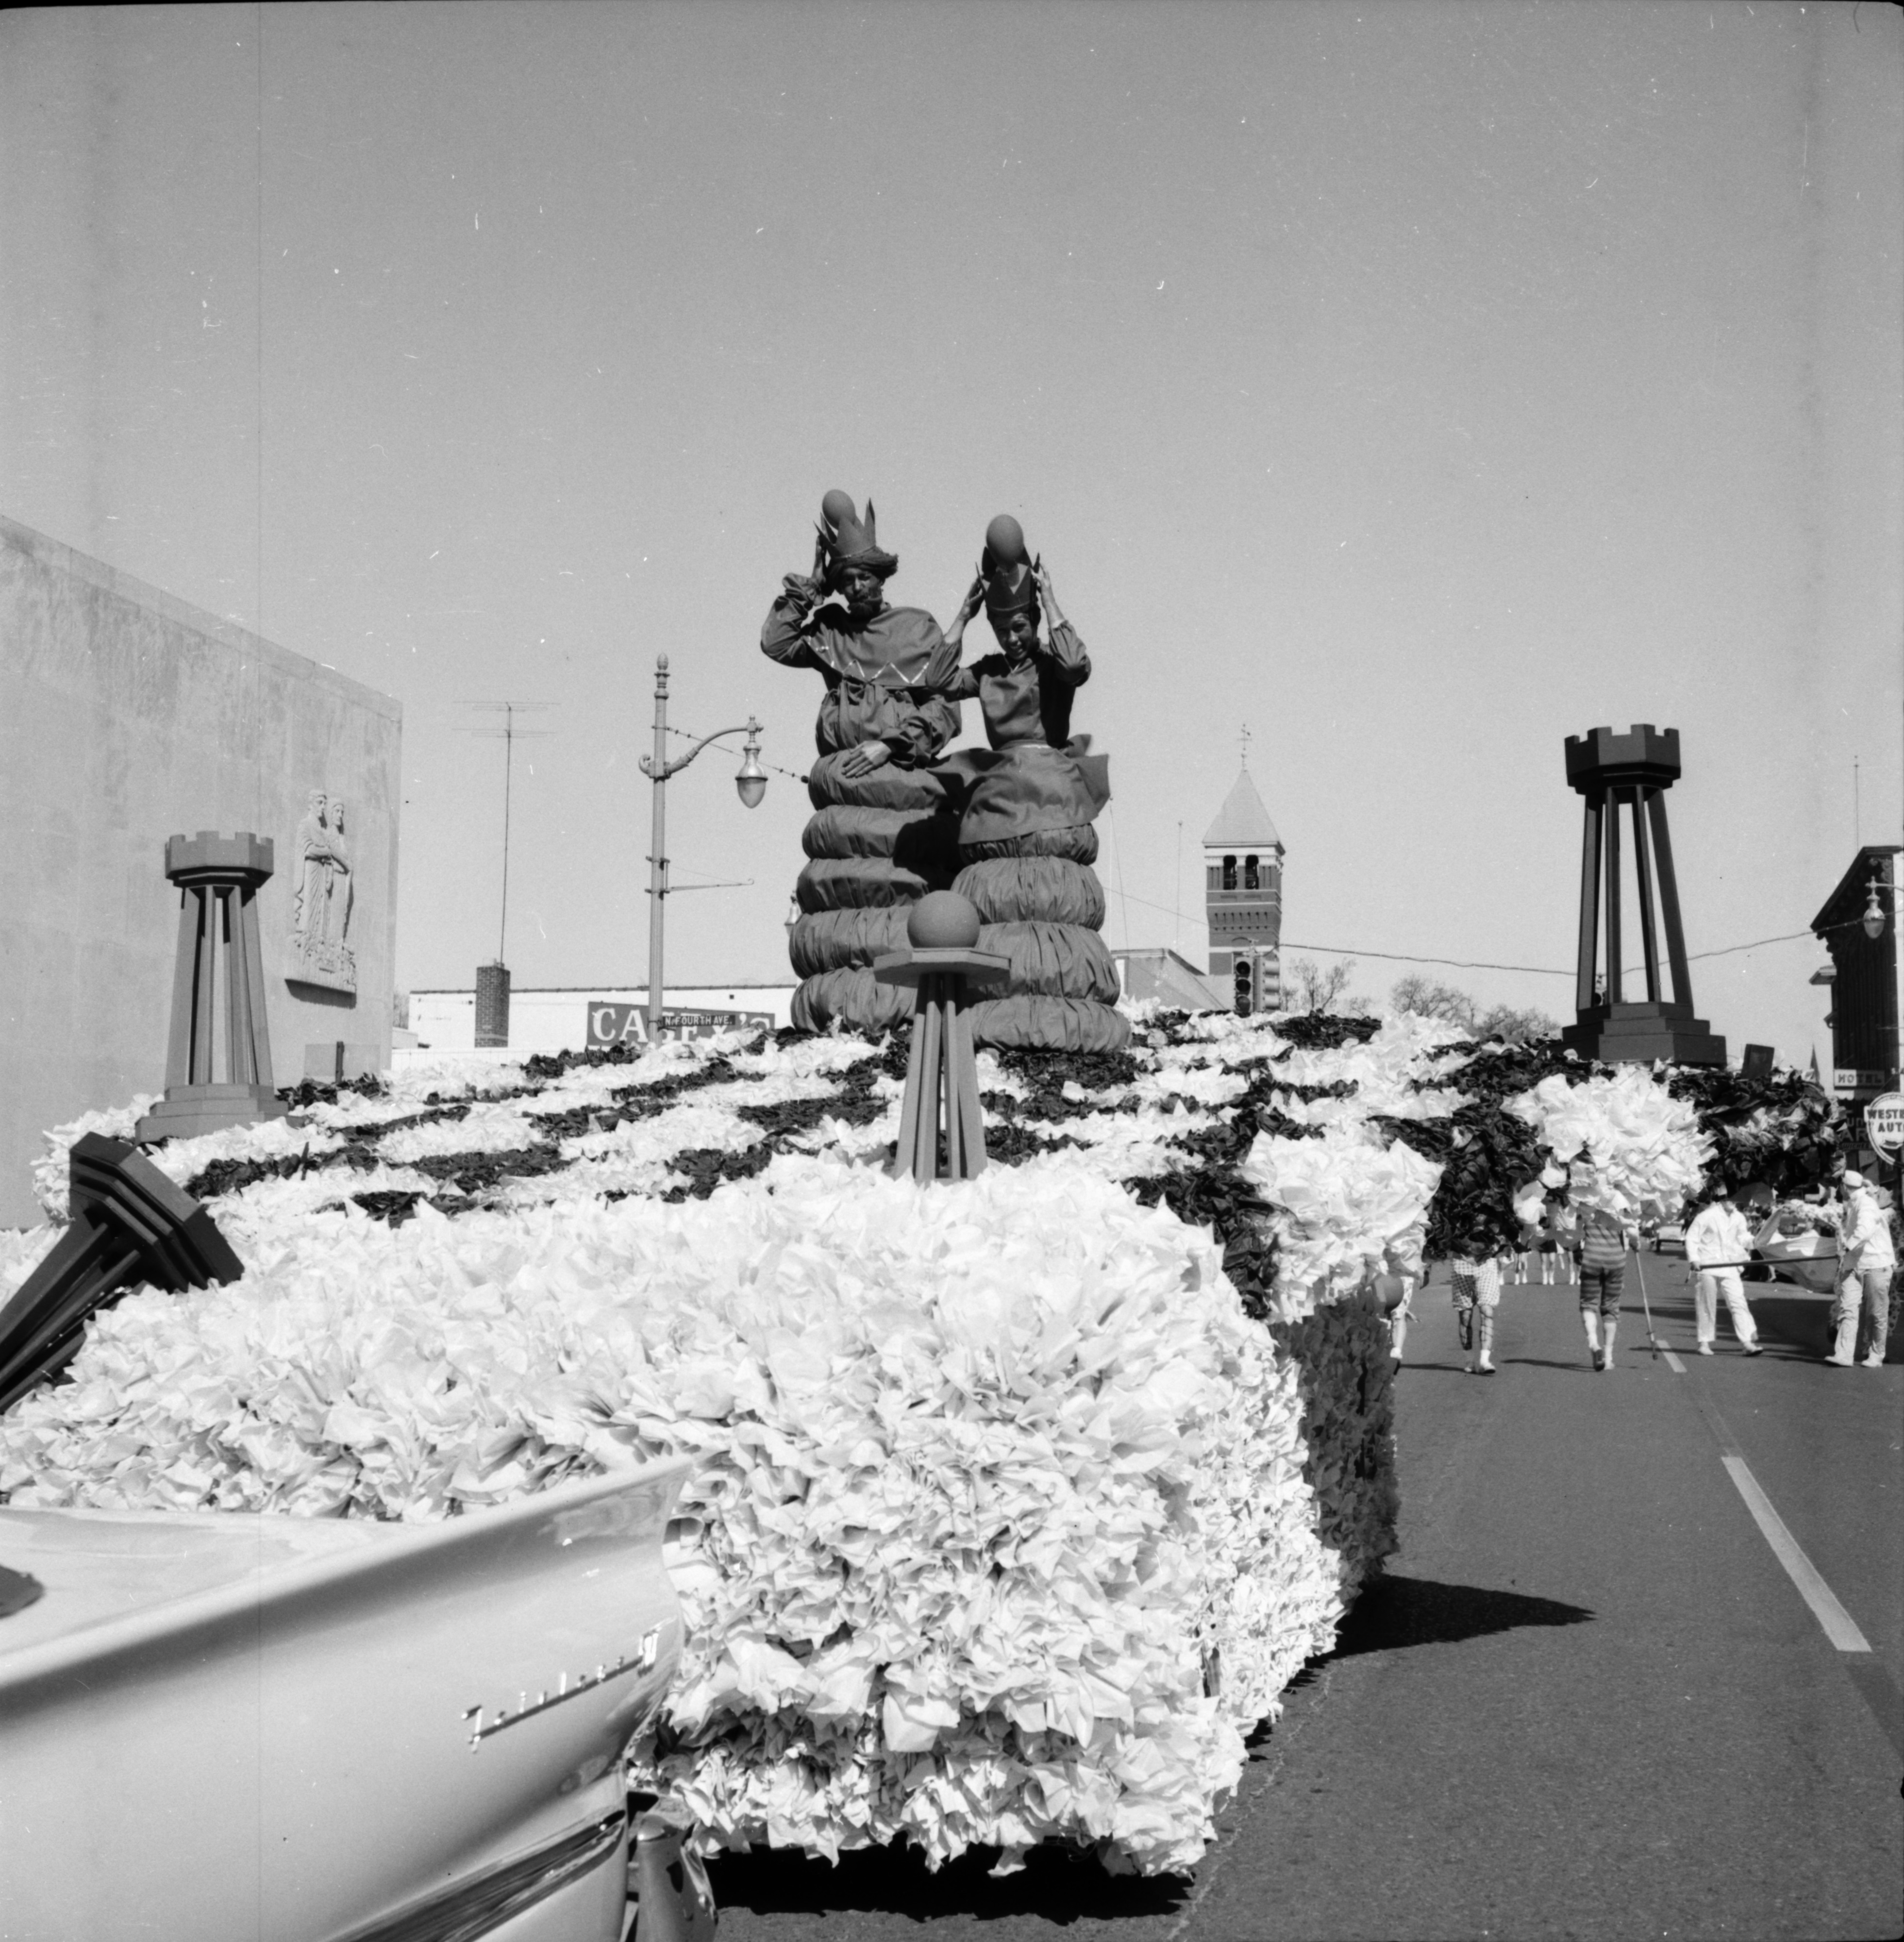 Floats Pass by the Washtenaw County Building during the Michigras Parade, April 1958 image